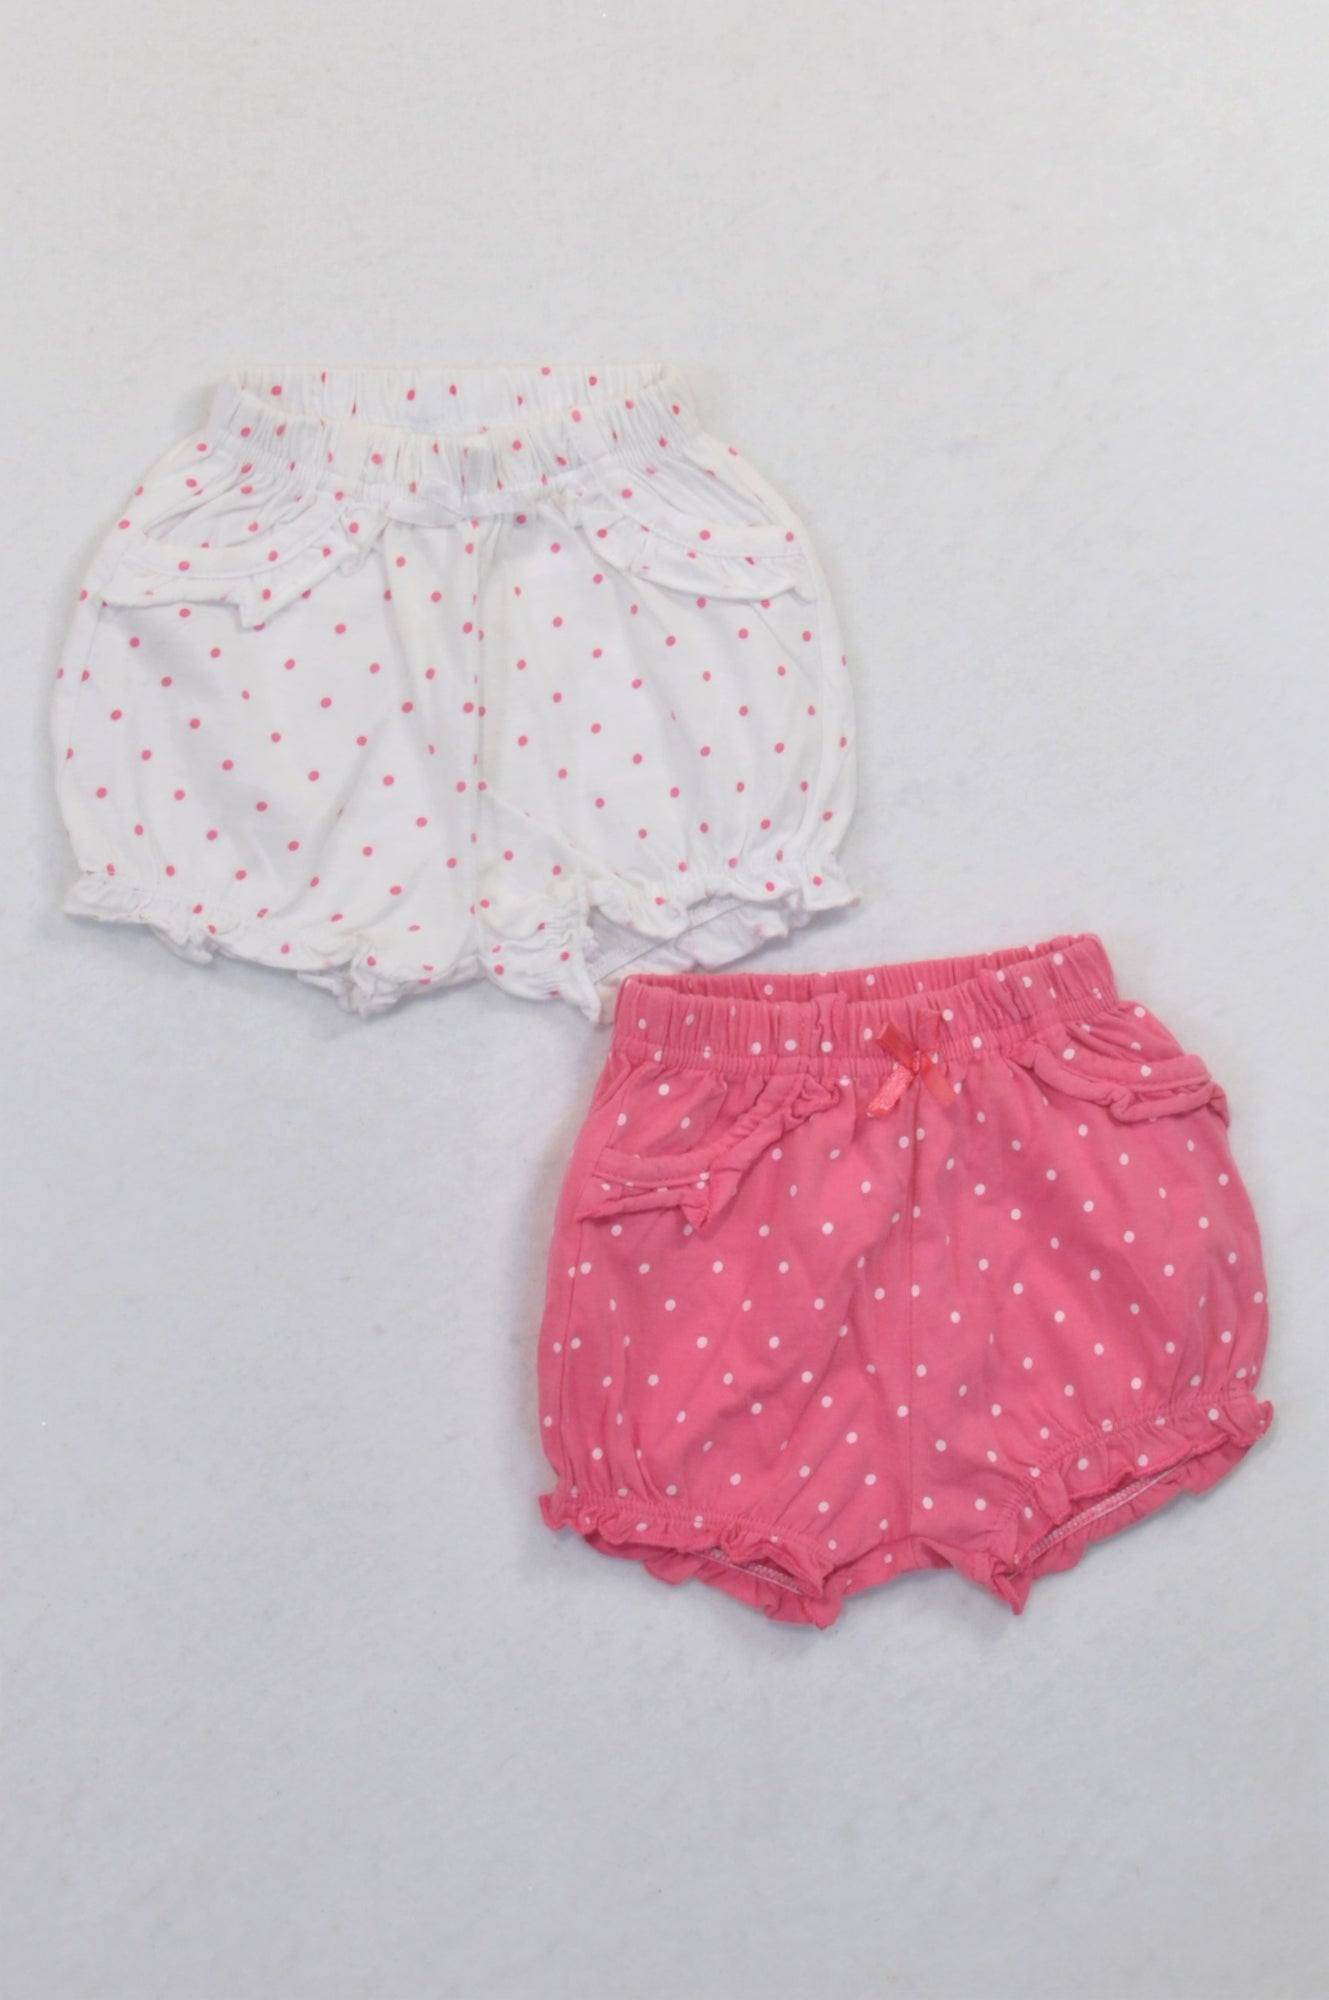 Ackermans 2 Pack White & Pink Bubble Shorts Girls 0-3 months